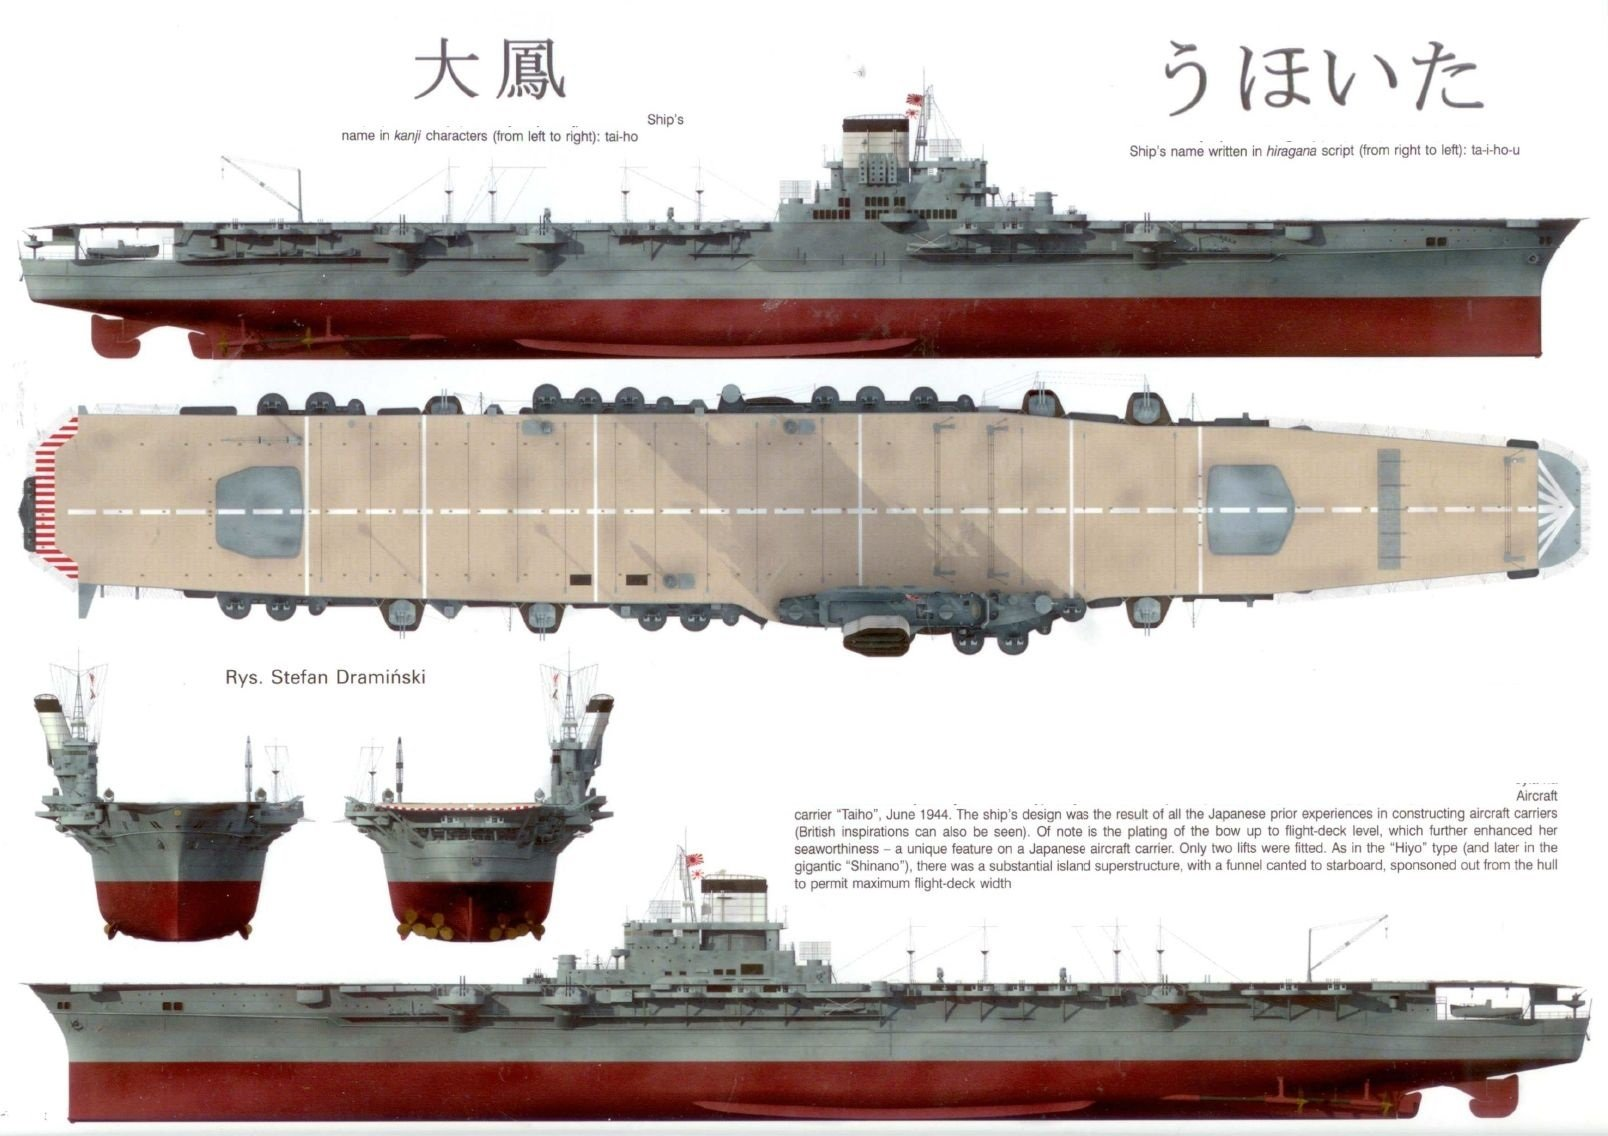 1 Relatively Simple Design Flaw (And 6 Torpedoes) Destroyed an Aircraft Carrier